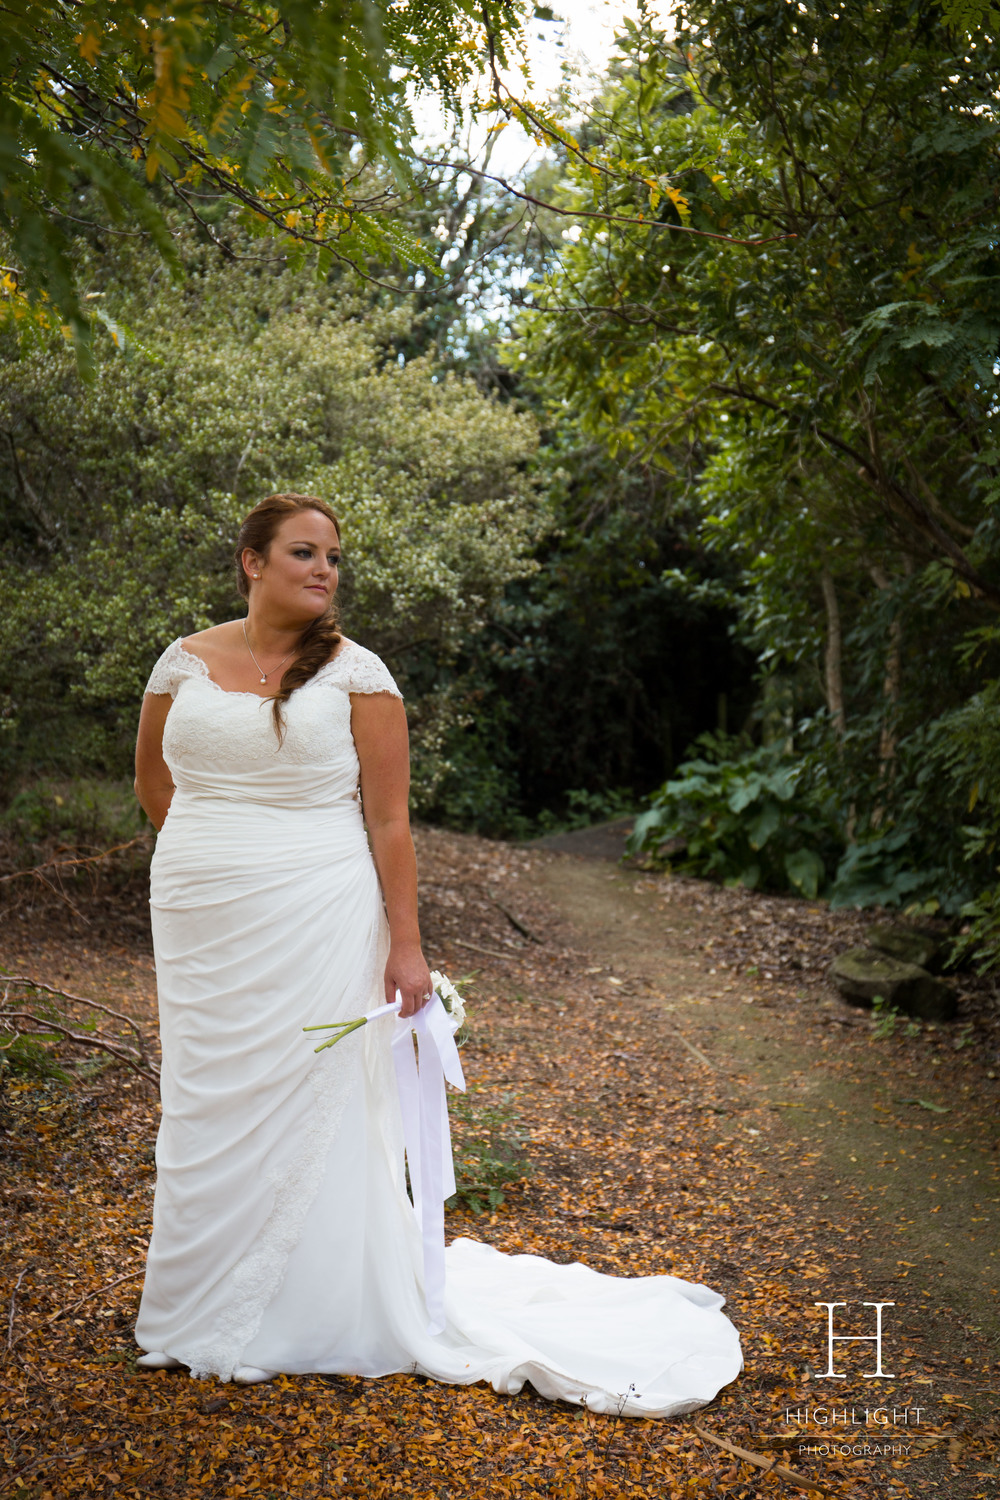 highlight_wedding_photography_palmerston-north_forest-bride_masterton_new_zealand.jpg